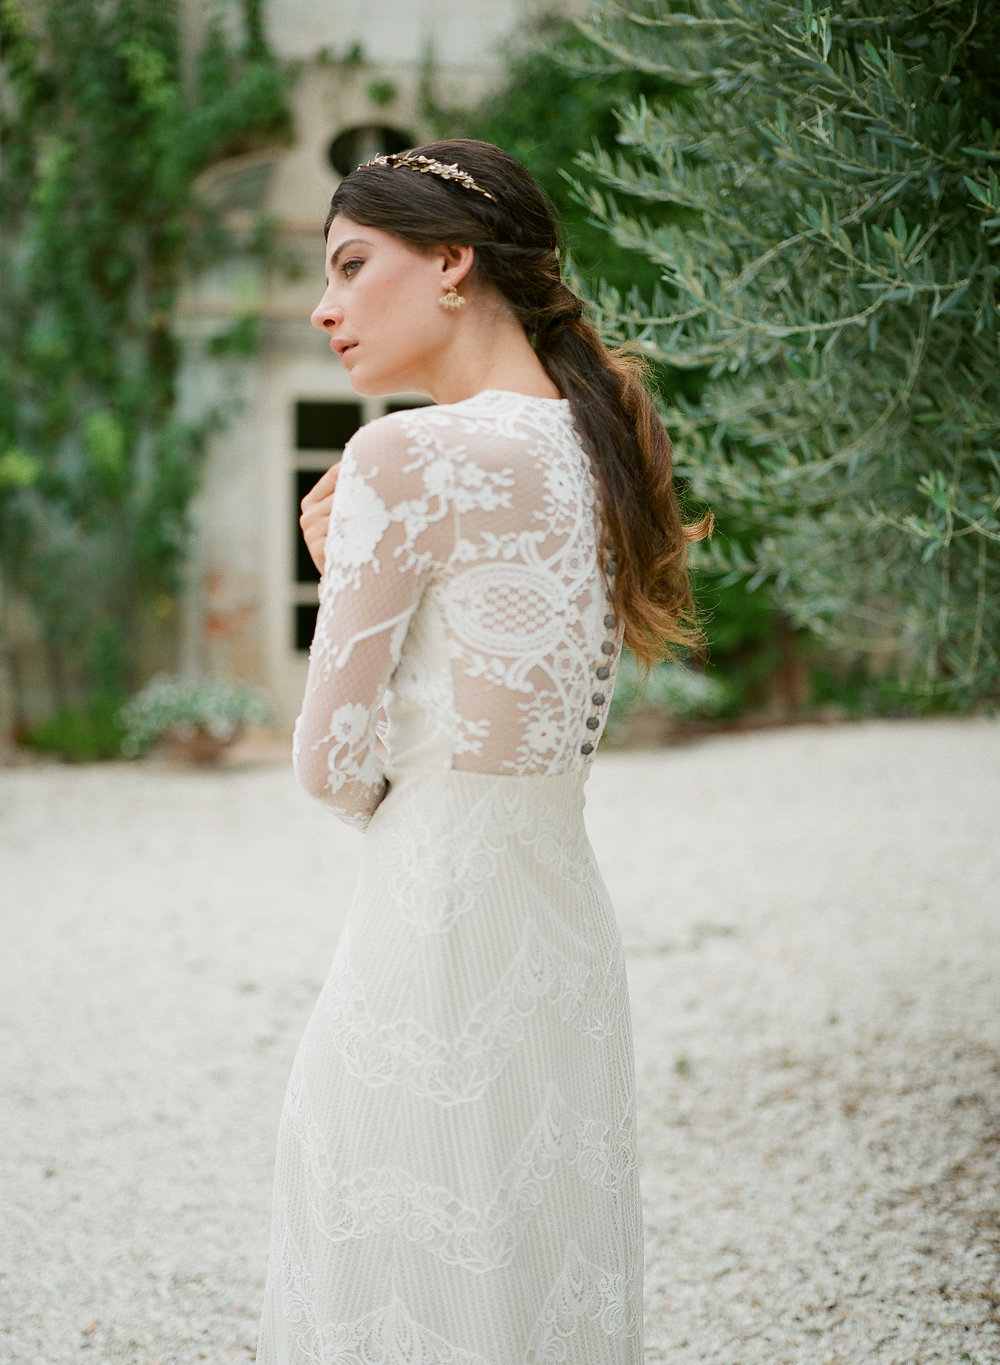 Lace Sleeve Claire Pettibone Dress | Credit: Magnolia & Magpie Photography